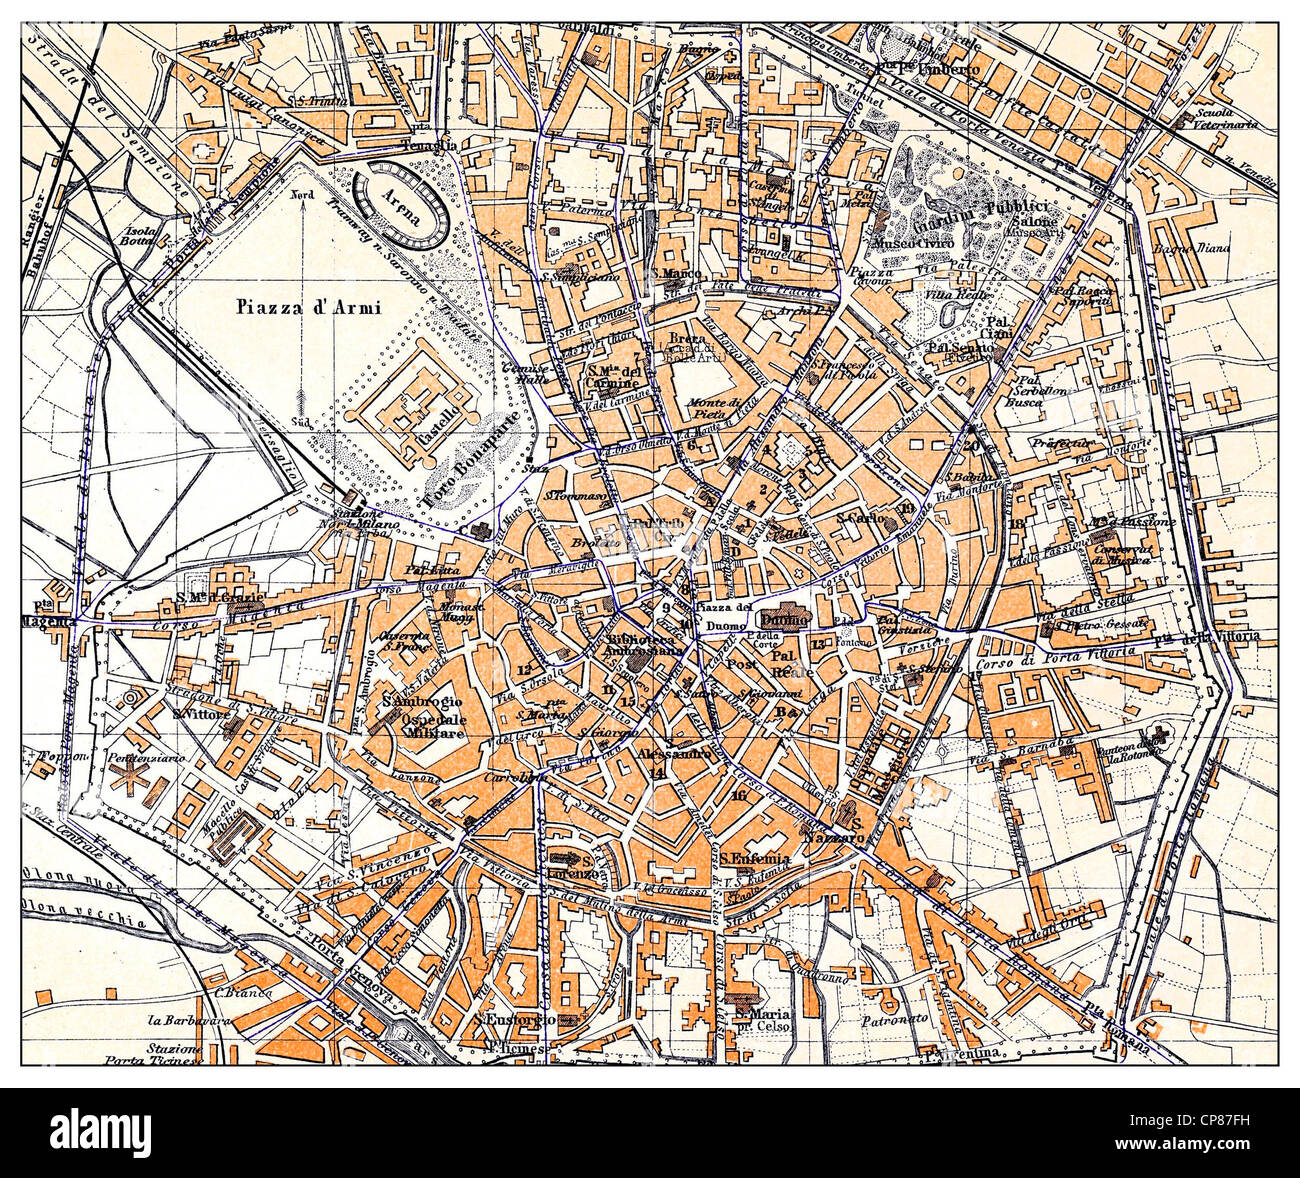 Milan Map Stock Photos & Milan Map Stock Images - Alamy